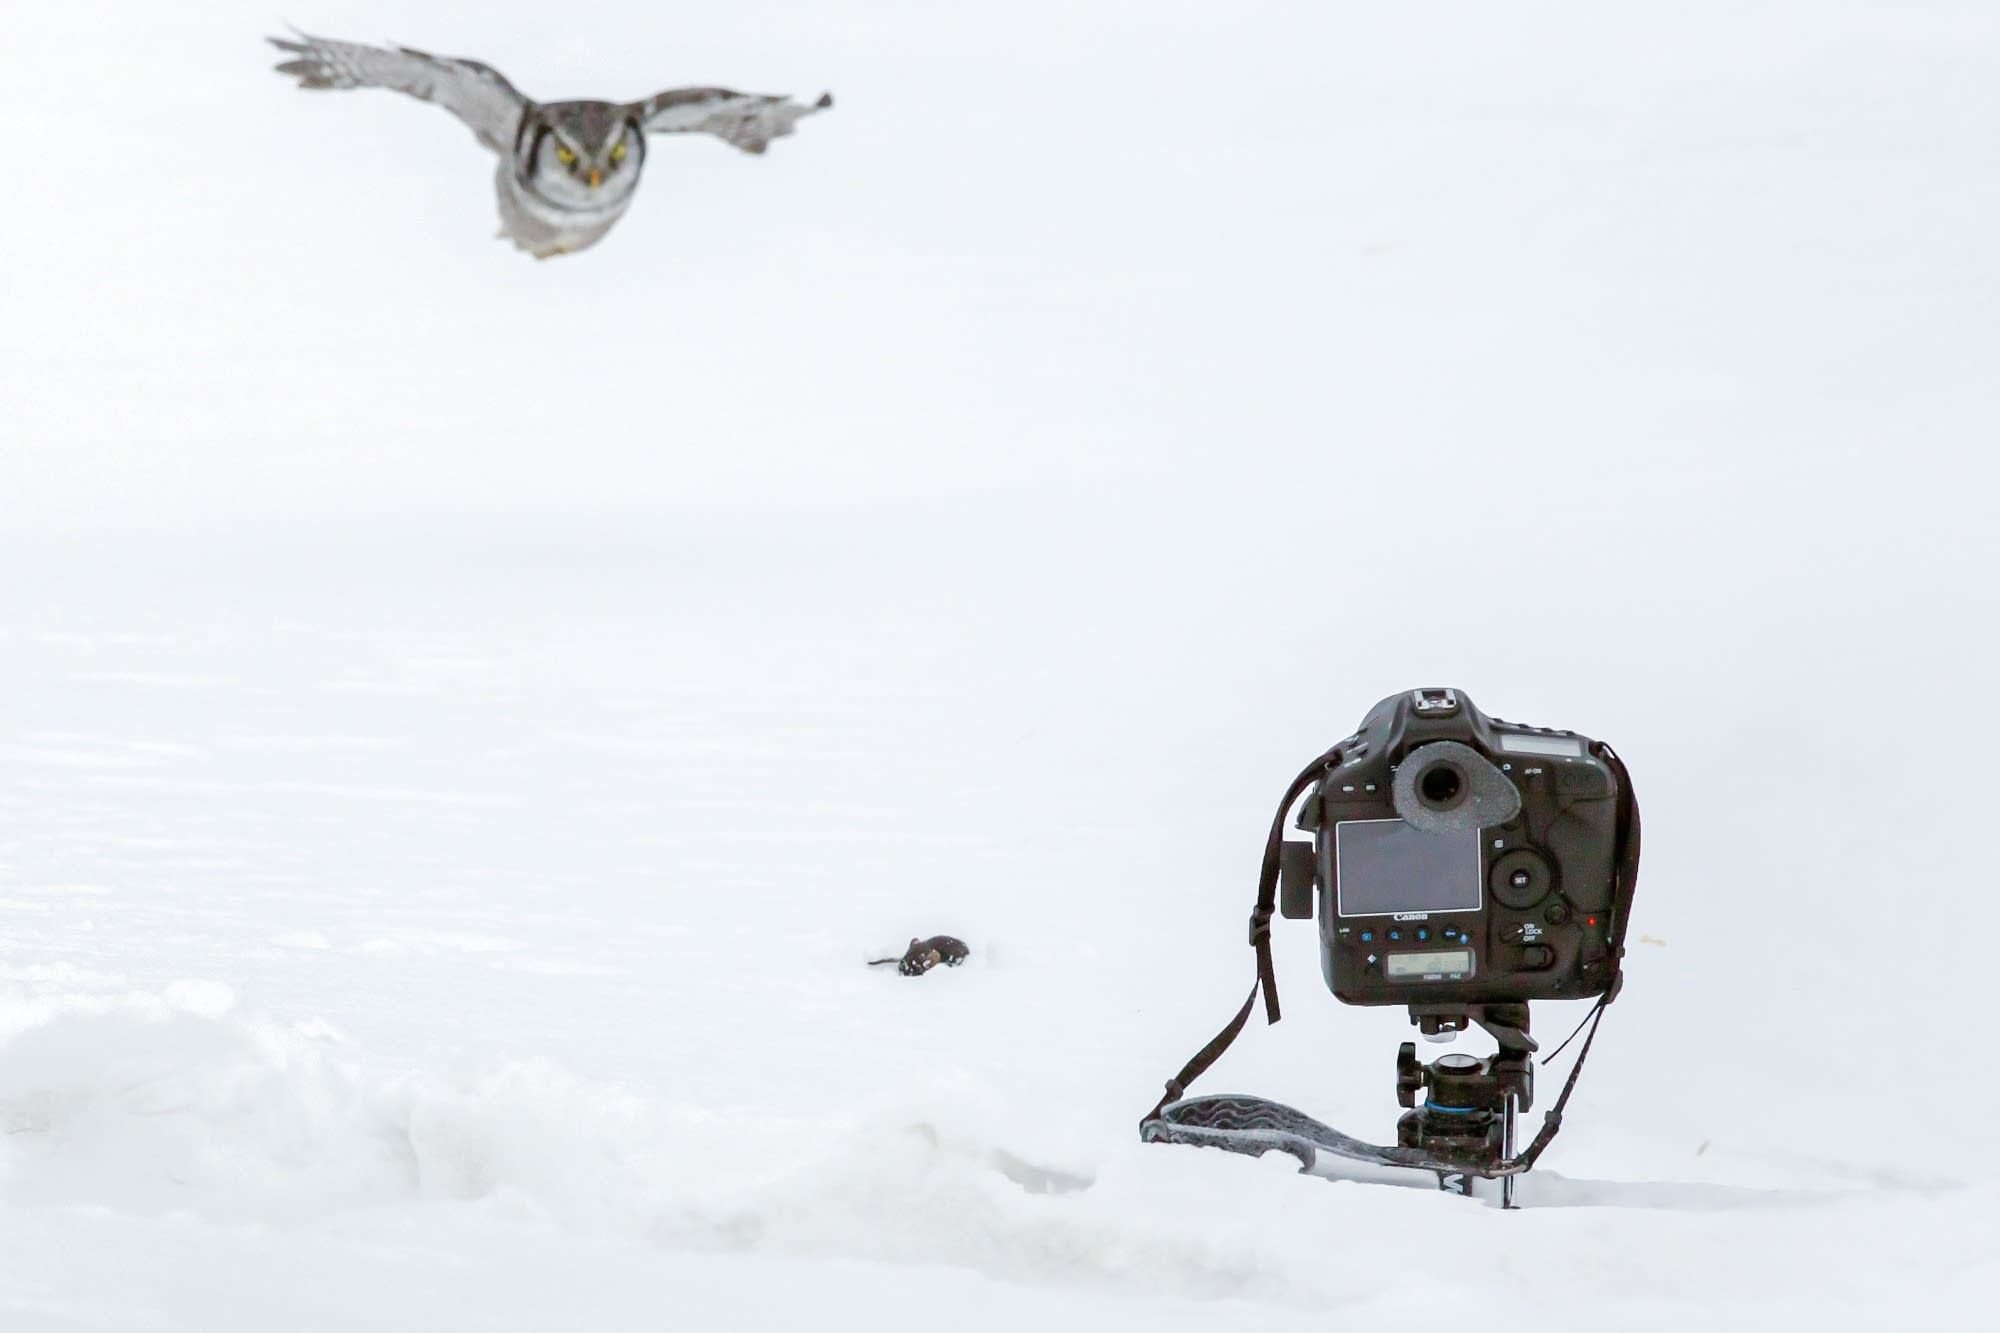 A Northern Hawk owl is baited into coming close to the camera.